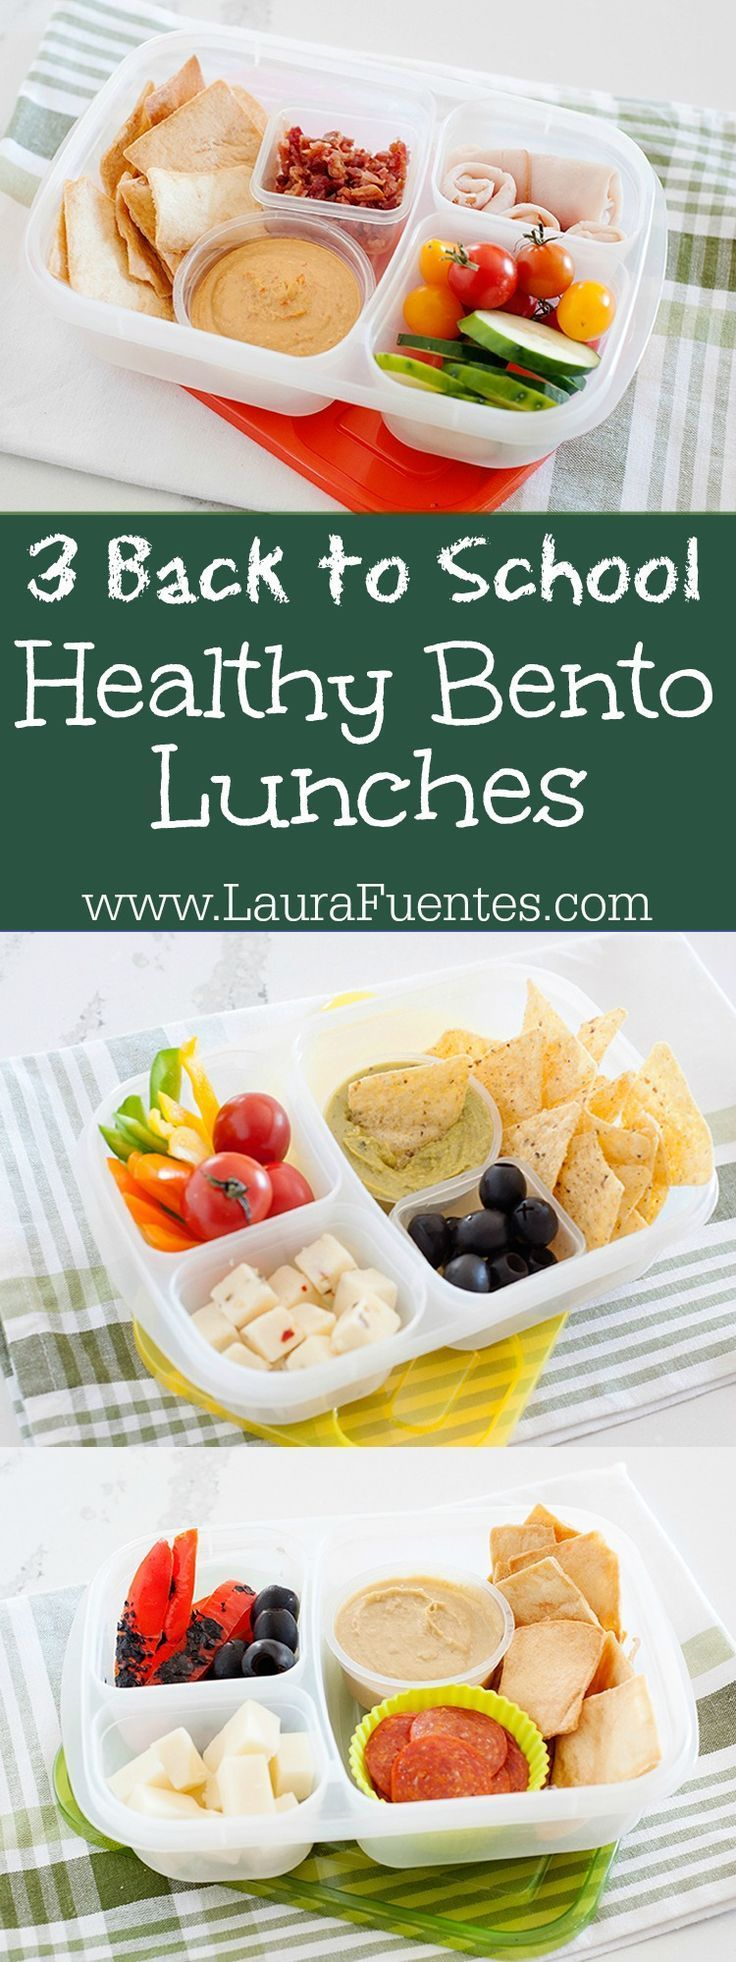 Easy school lunches that you can pack in minutes! Check out these 3 healthy bento box lunch ideas with fresh ingredients. #lunchbox #easylunchboxes